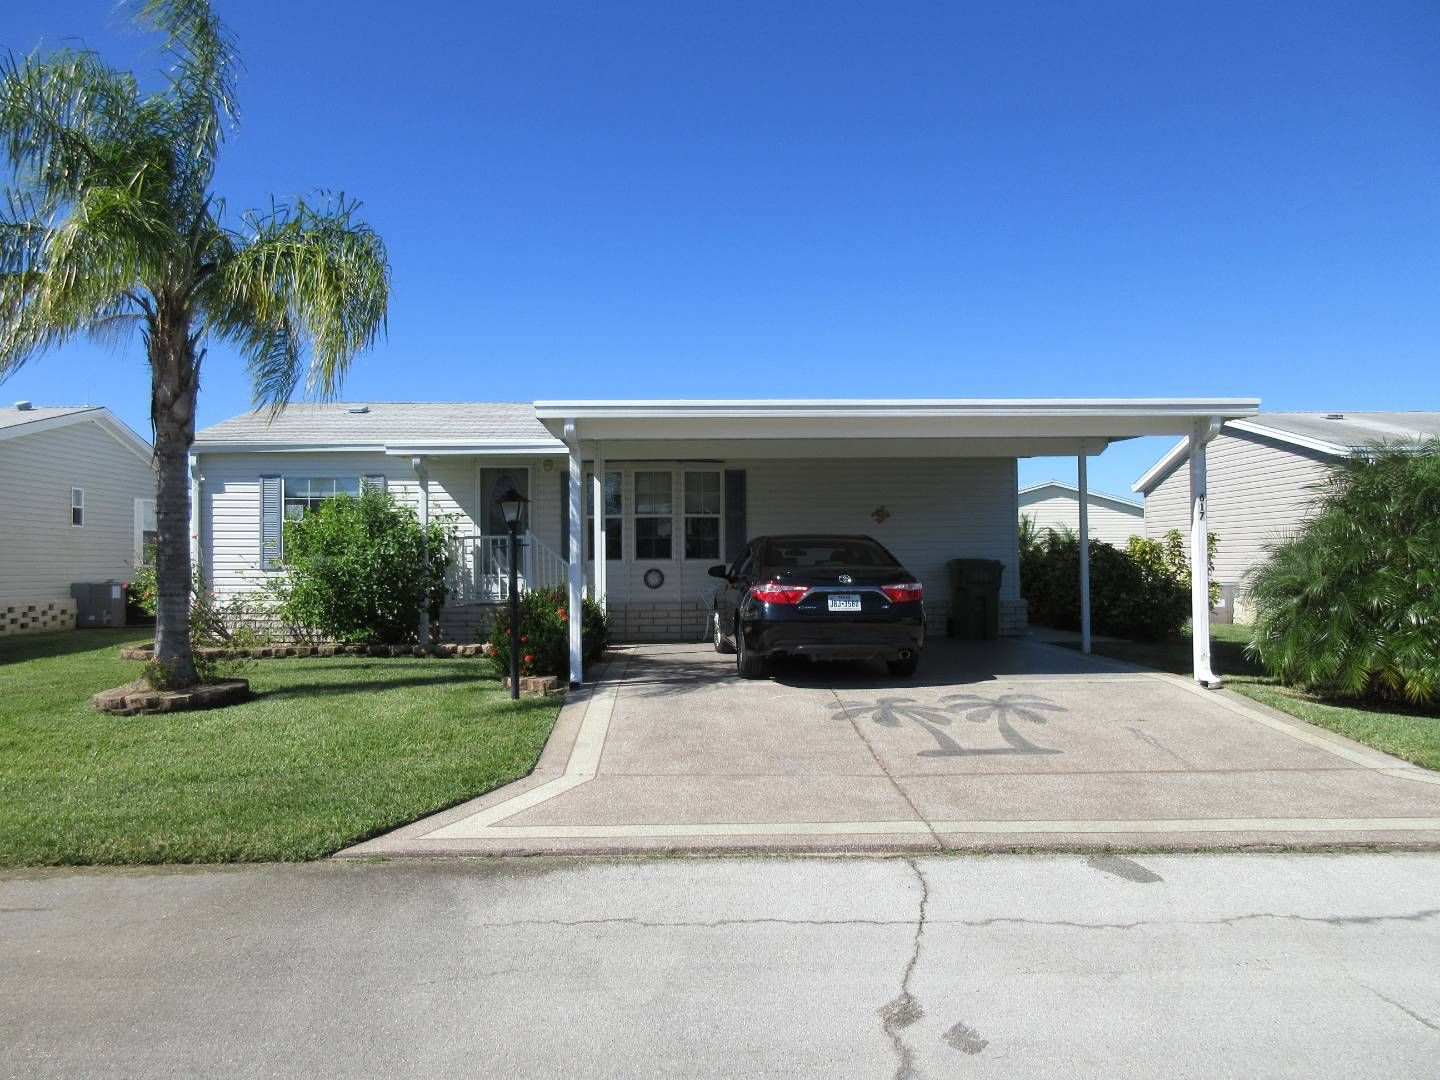 617 yellow cypress ln 48 for sale winter haven fl trulia